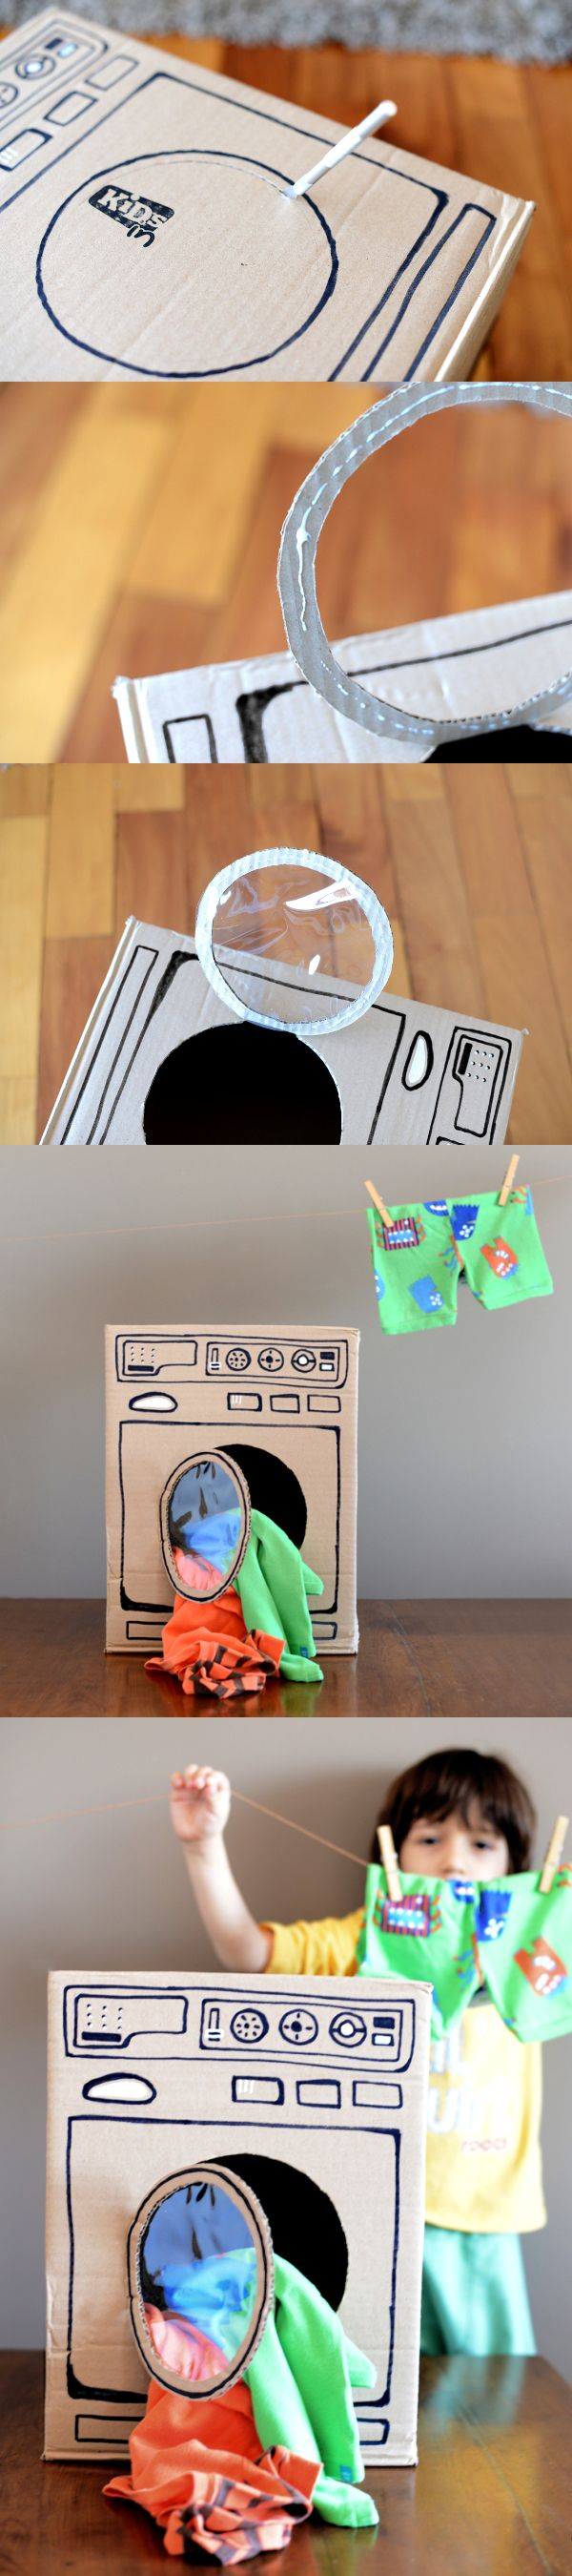 DIY toys cardboard washing machine